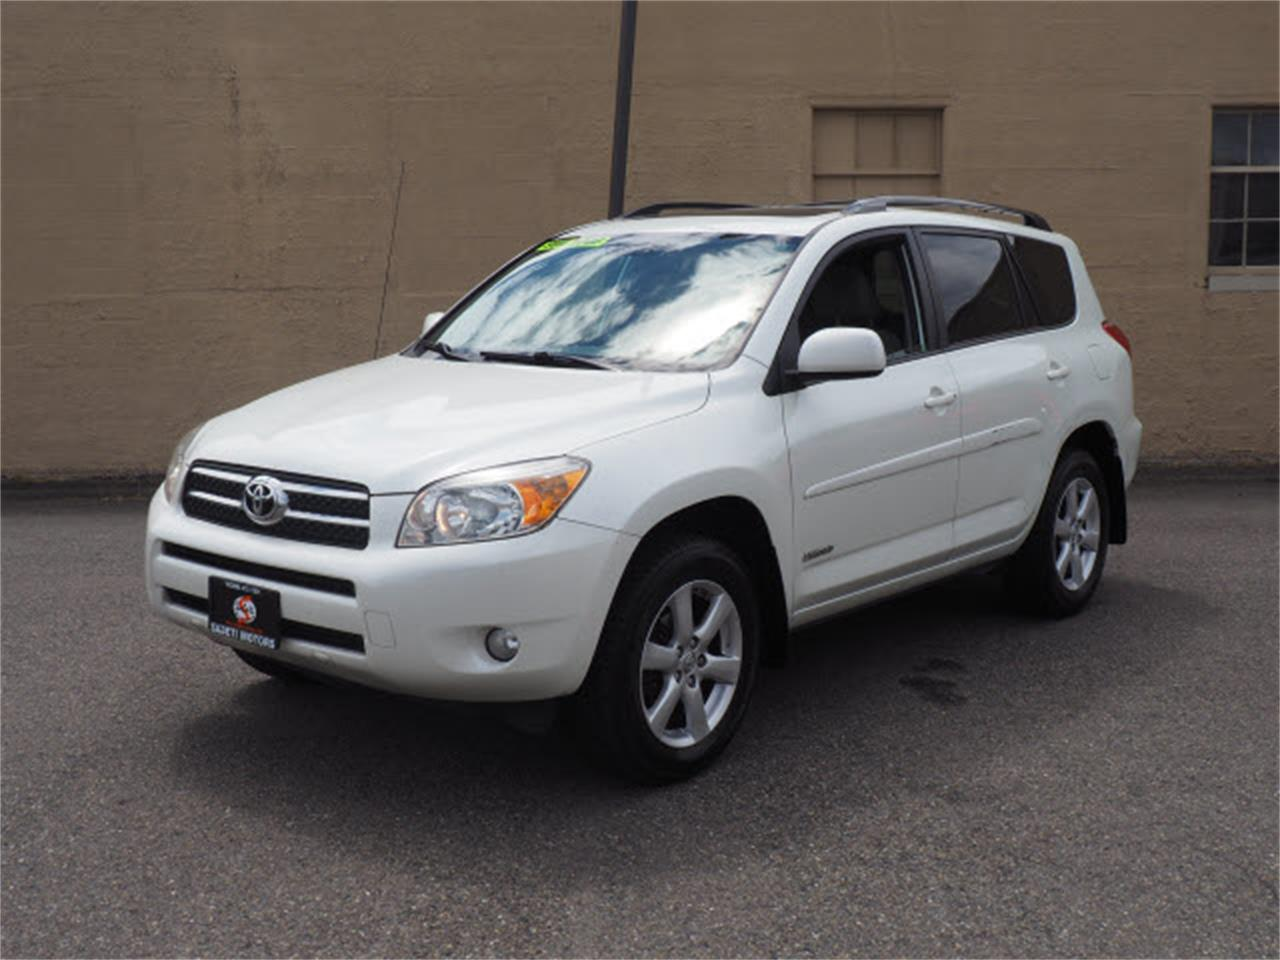 2008 Toyota Rav4 For Sale >> For Sale 2008 Toyota Rav4 In Tacoma Washington